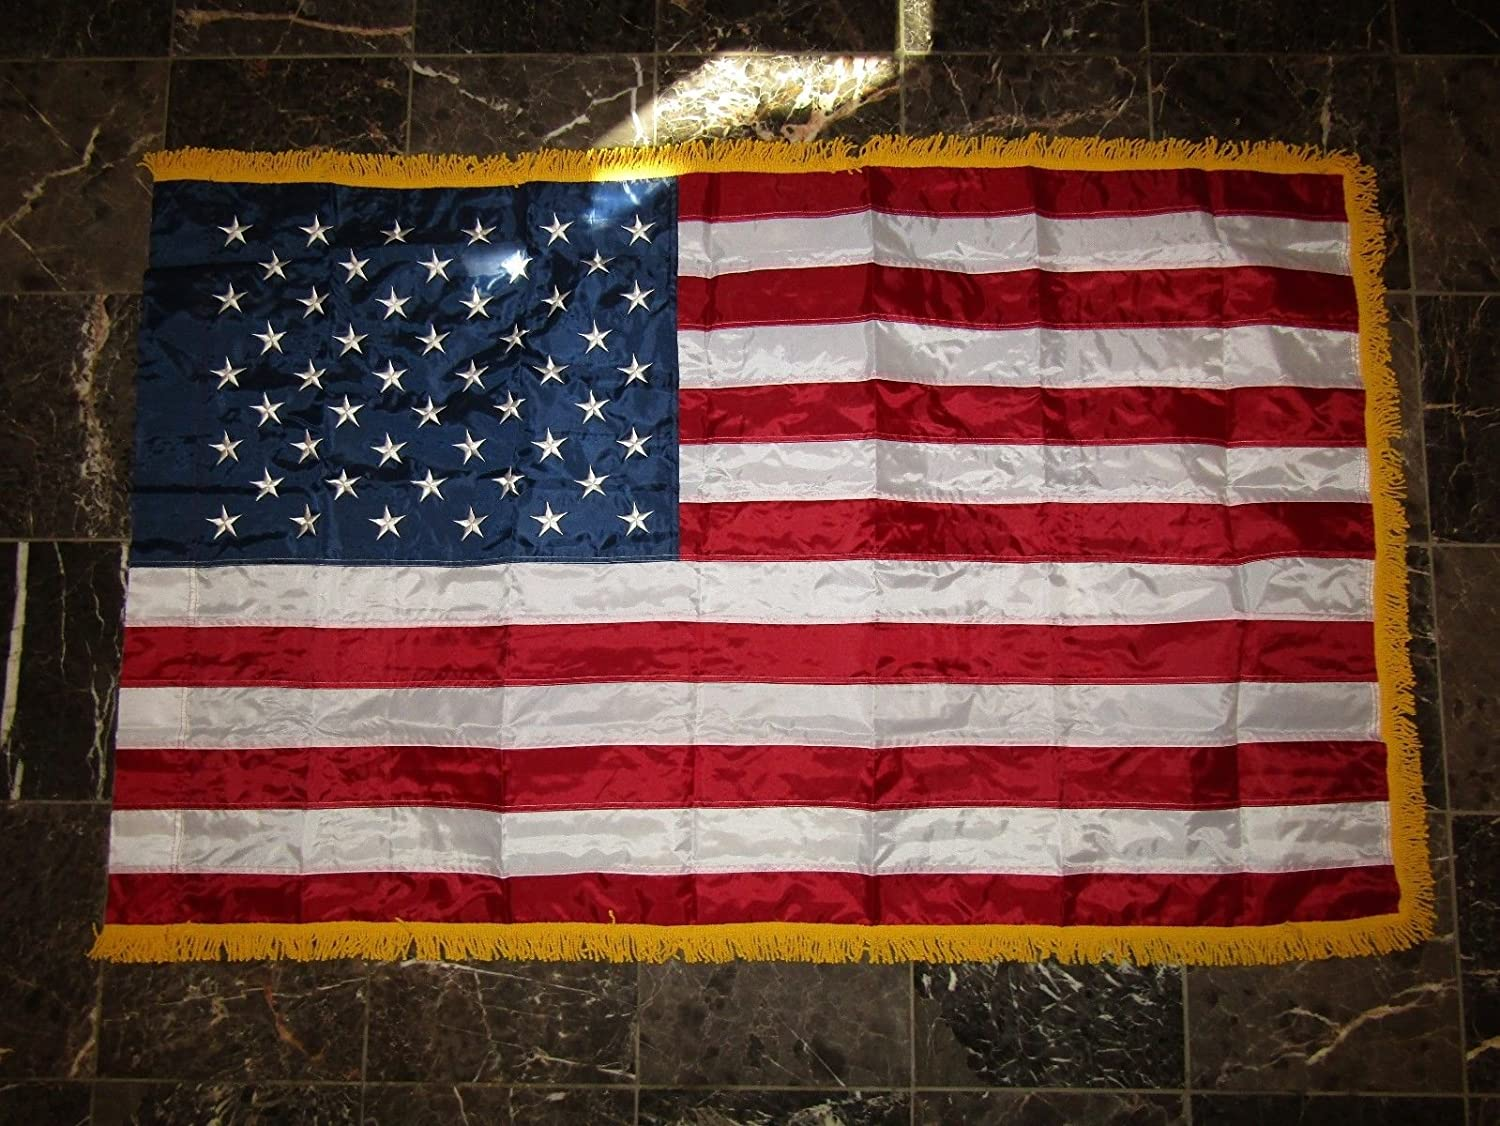 3'X5' Embroidered Sewn US USA AMERICAN Flag 3'x5' INDOOR Pole Sleeve GOLD FRINGE 81Z5UOXMh7L